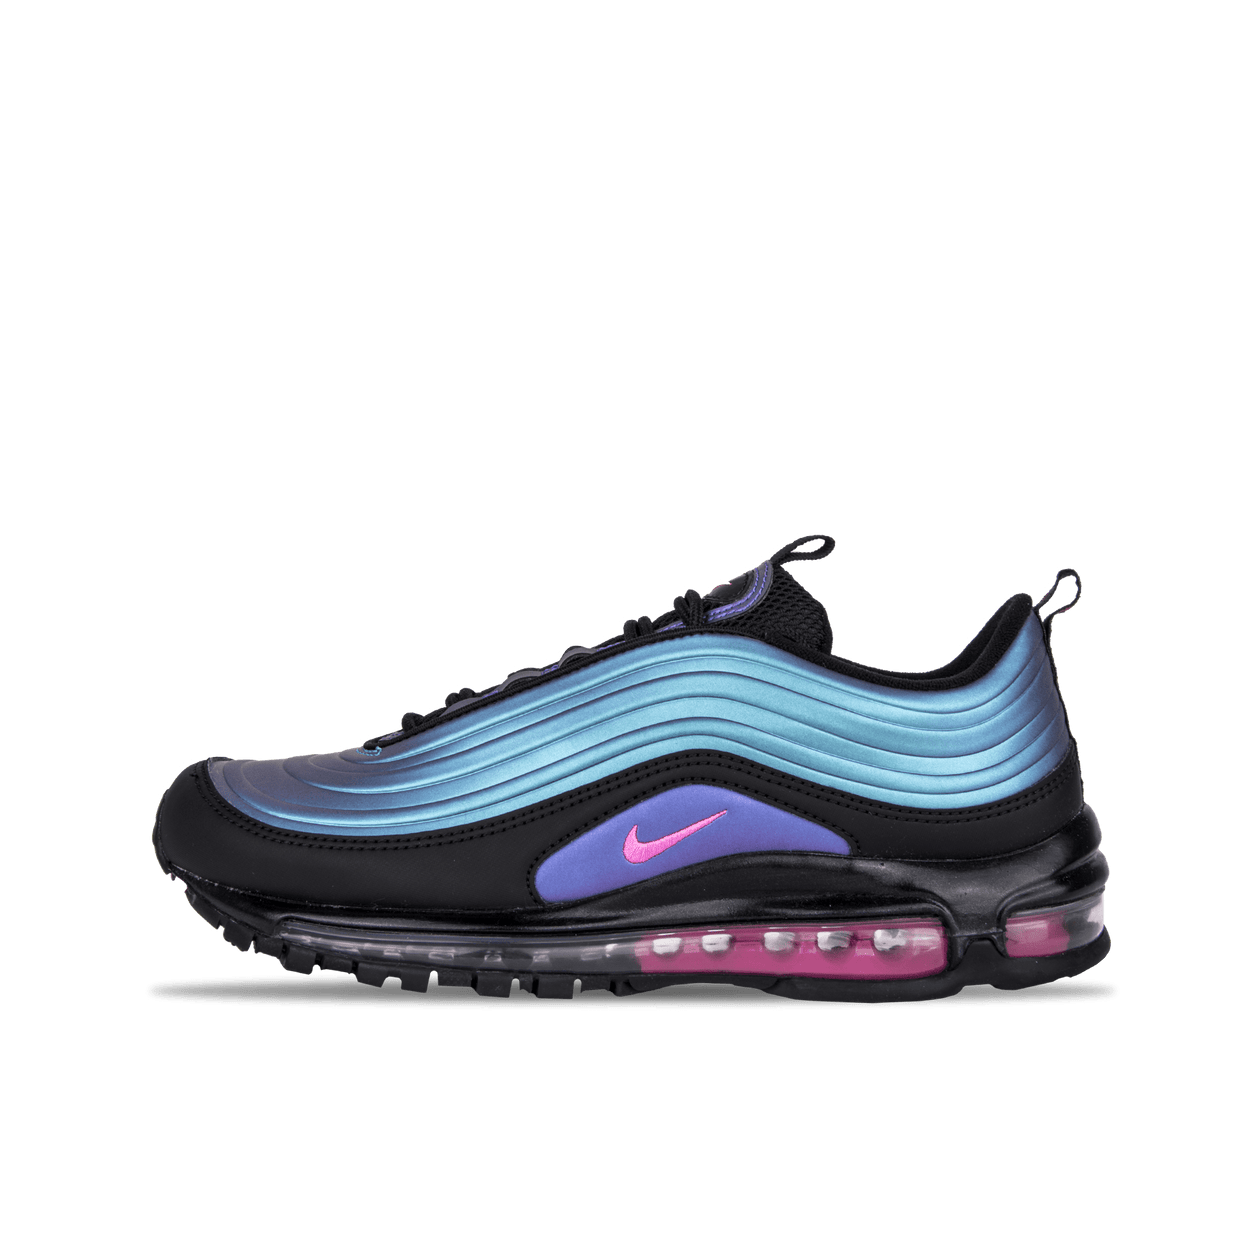 Air Max 97 LX - Black/Laser Fuchsia